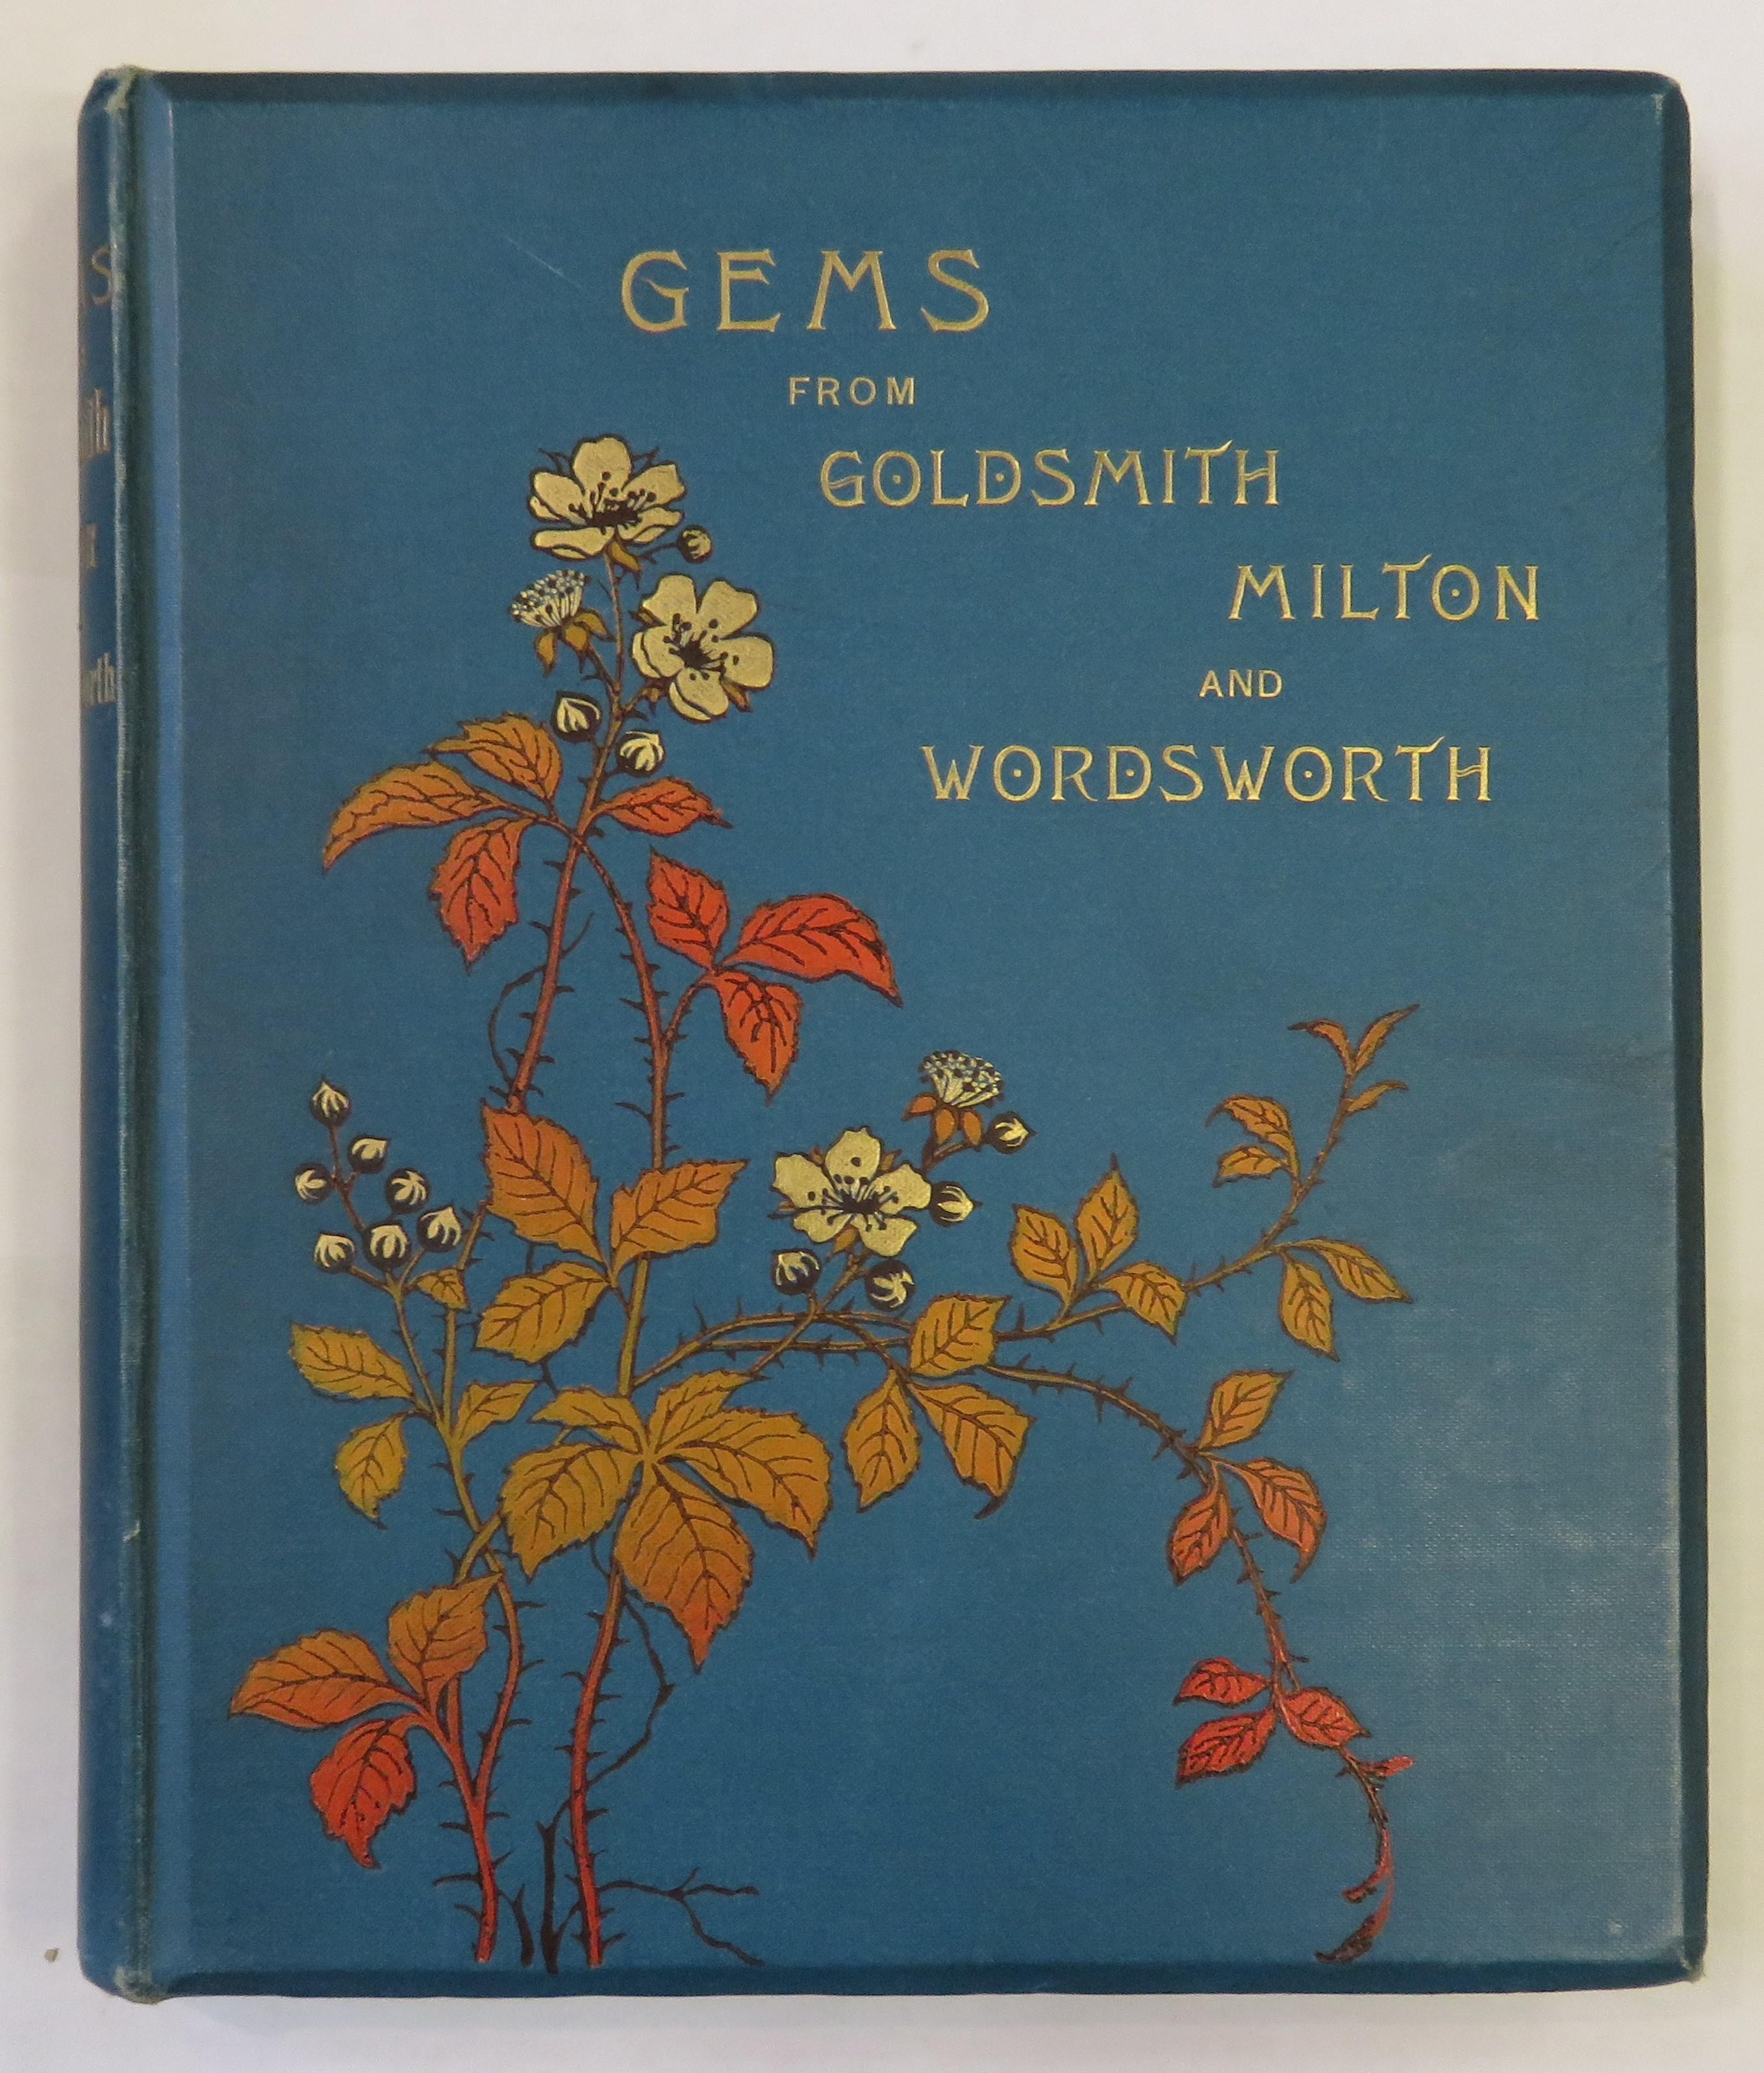 Gems from Goldsmith, Milton, and Wordsworth